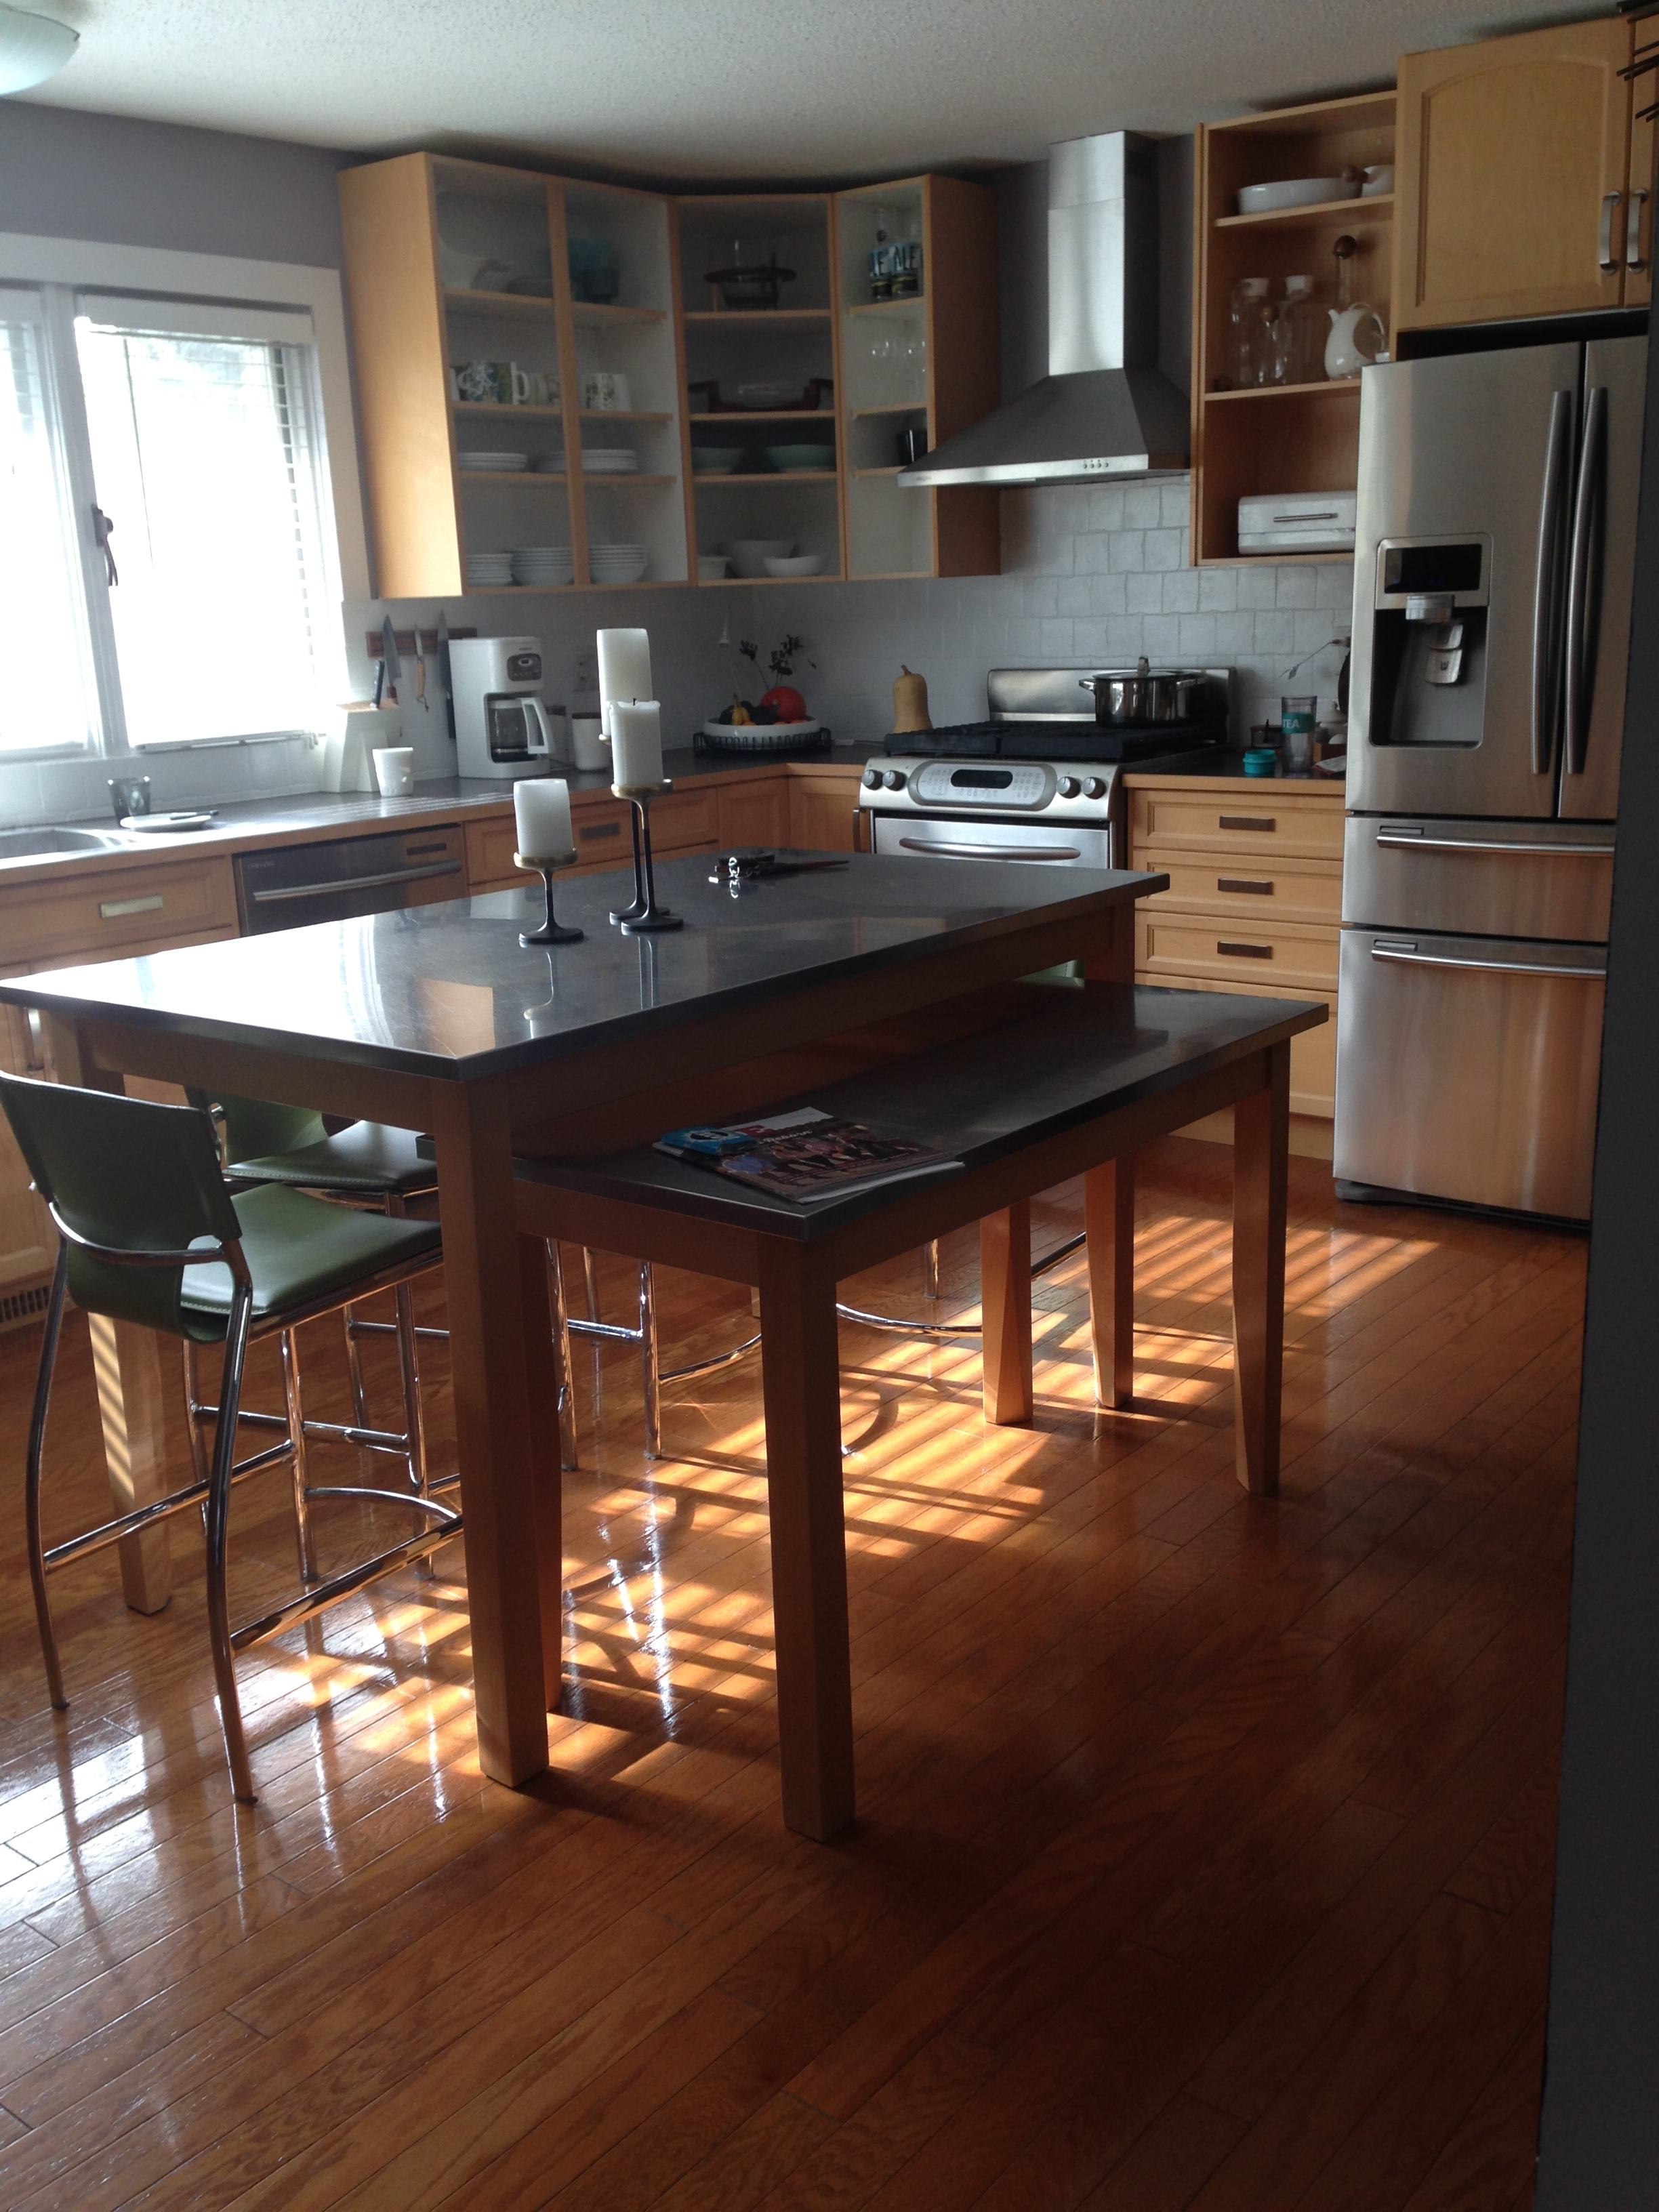 kitchen before (home 2)